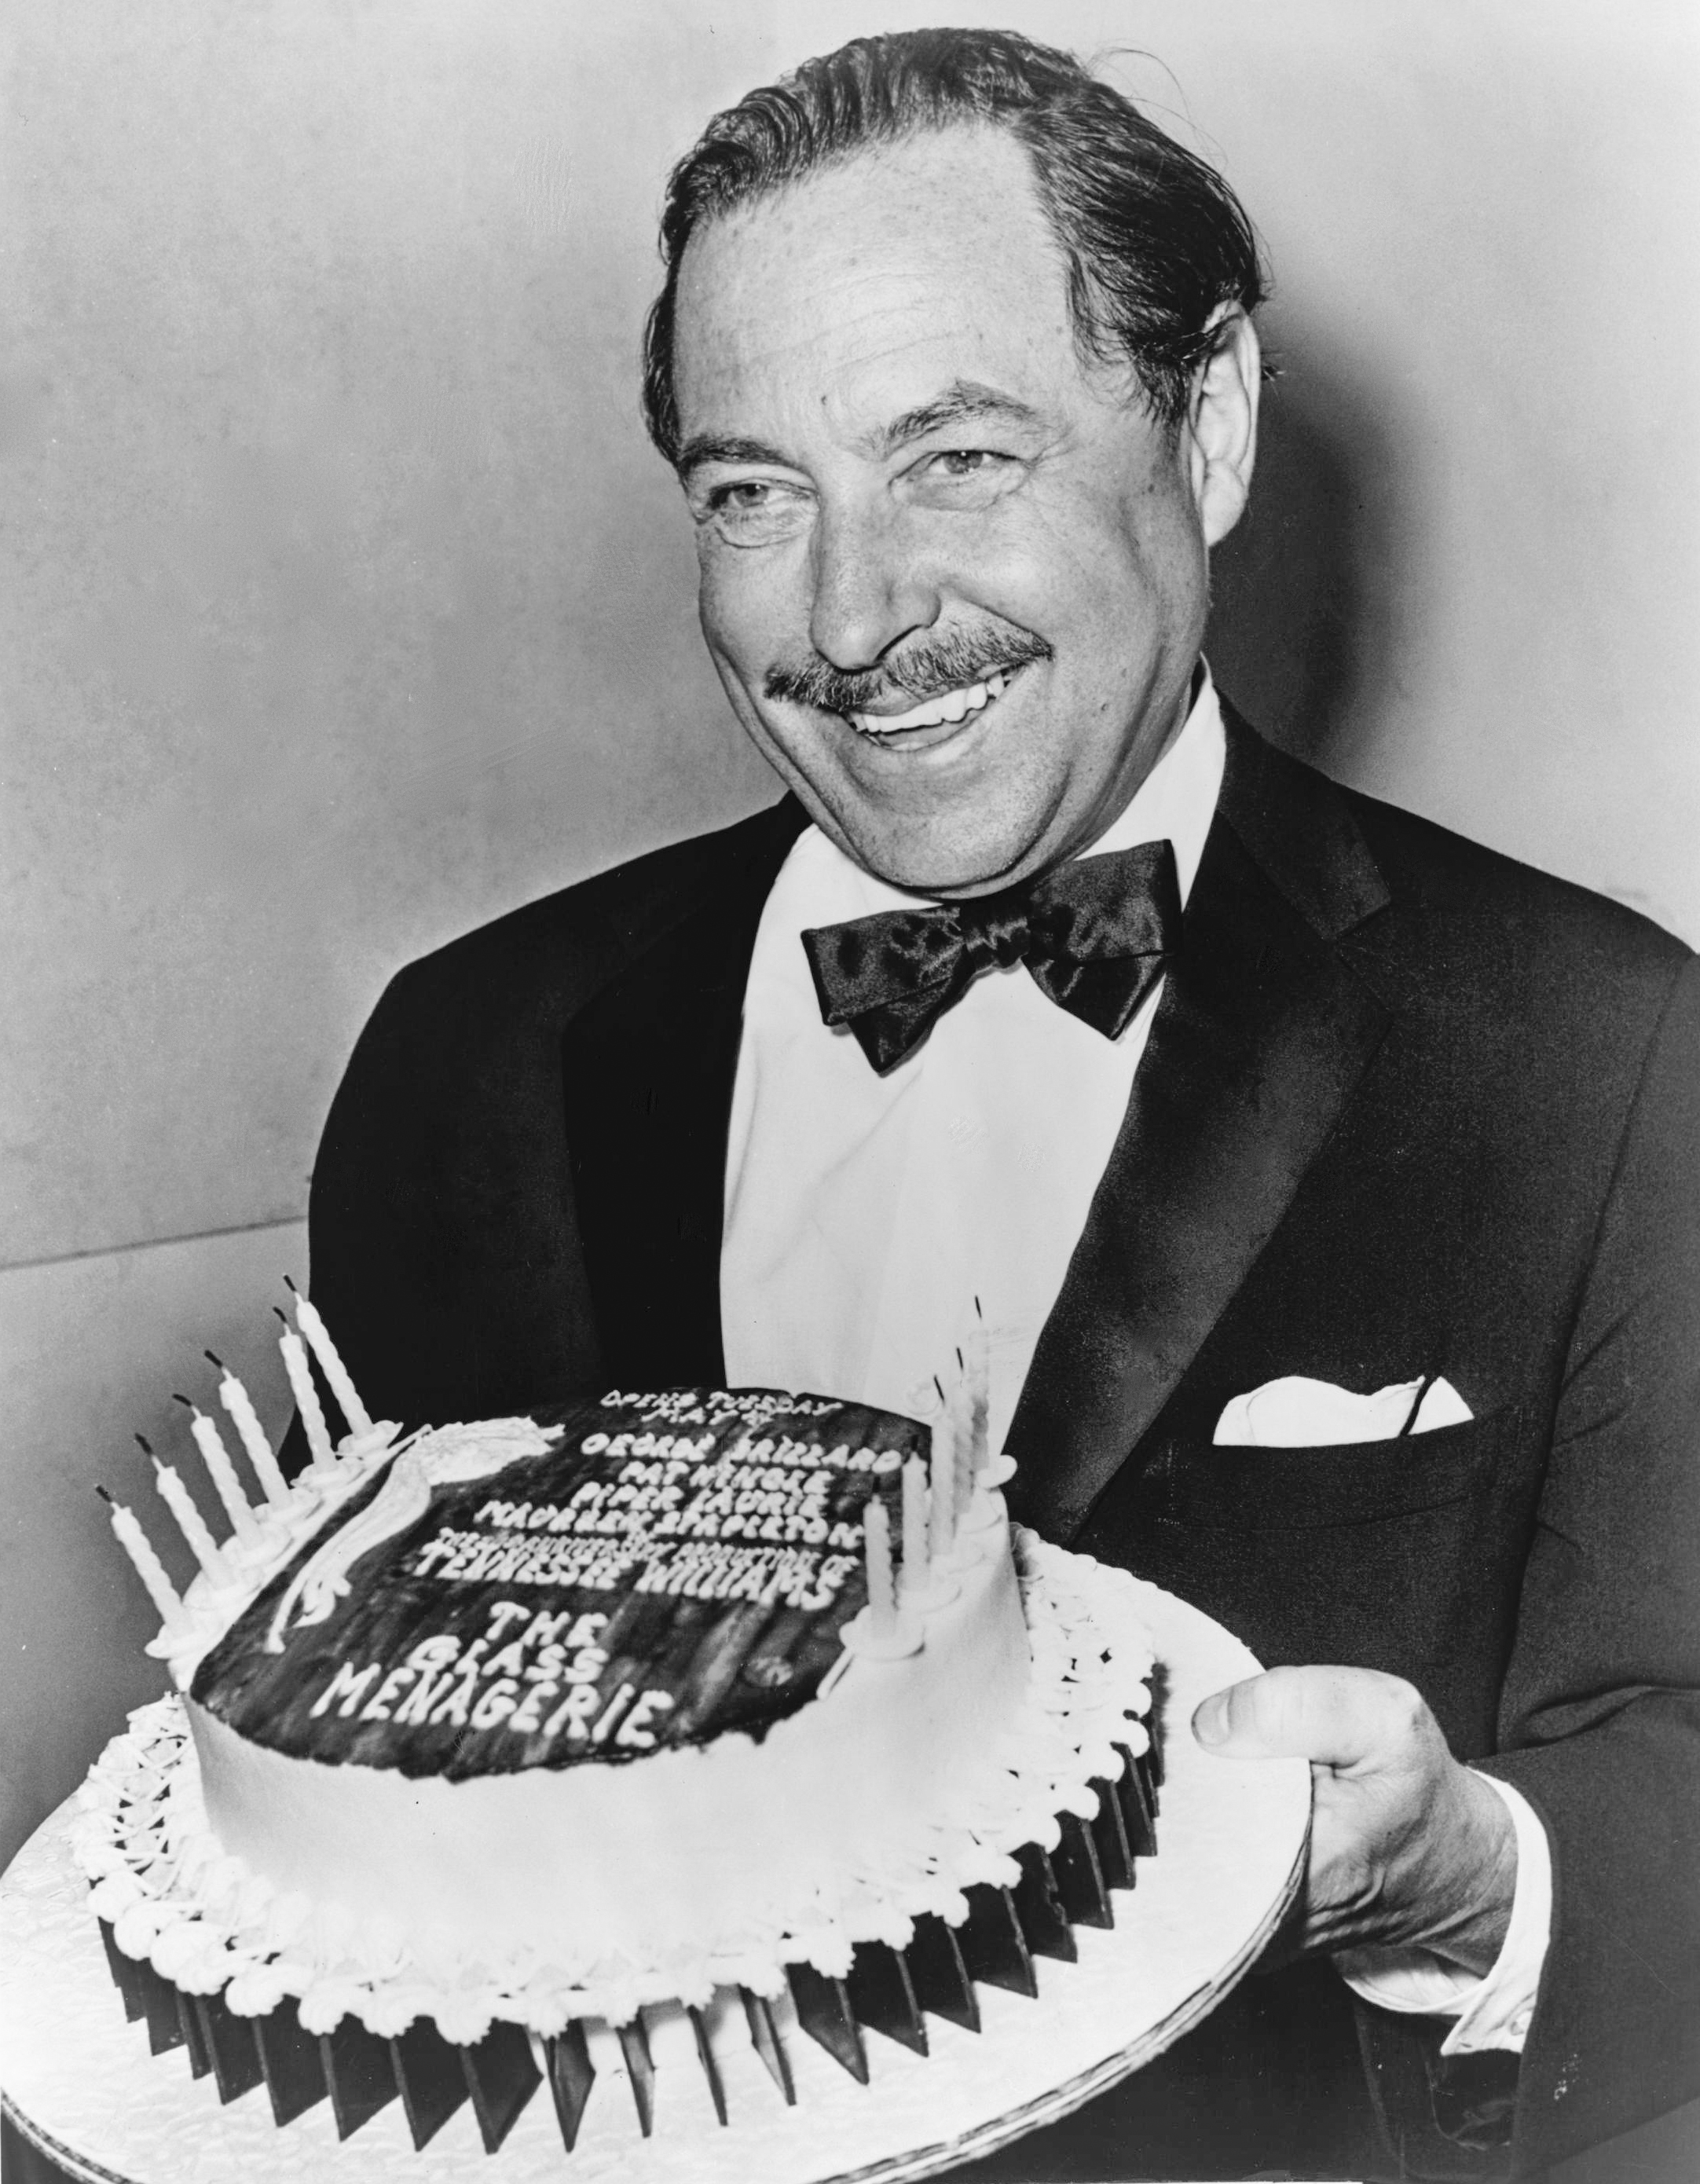 185px-Tennessee_Williams_with_cake_NYWTS.jpg